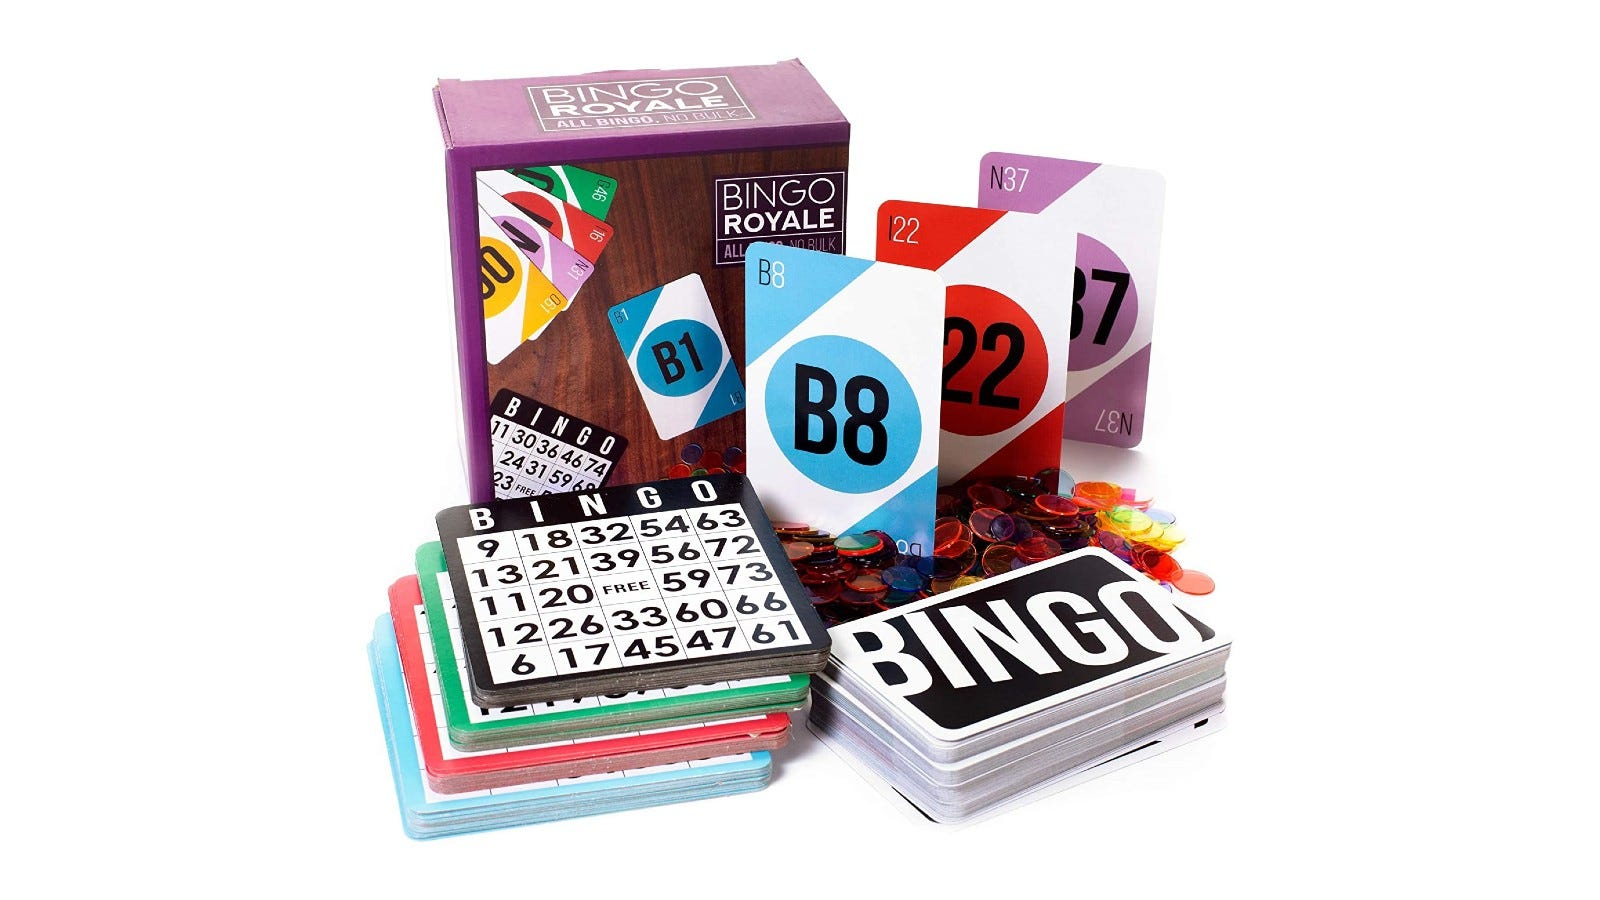 a bingo set with a lot of cards